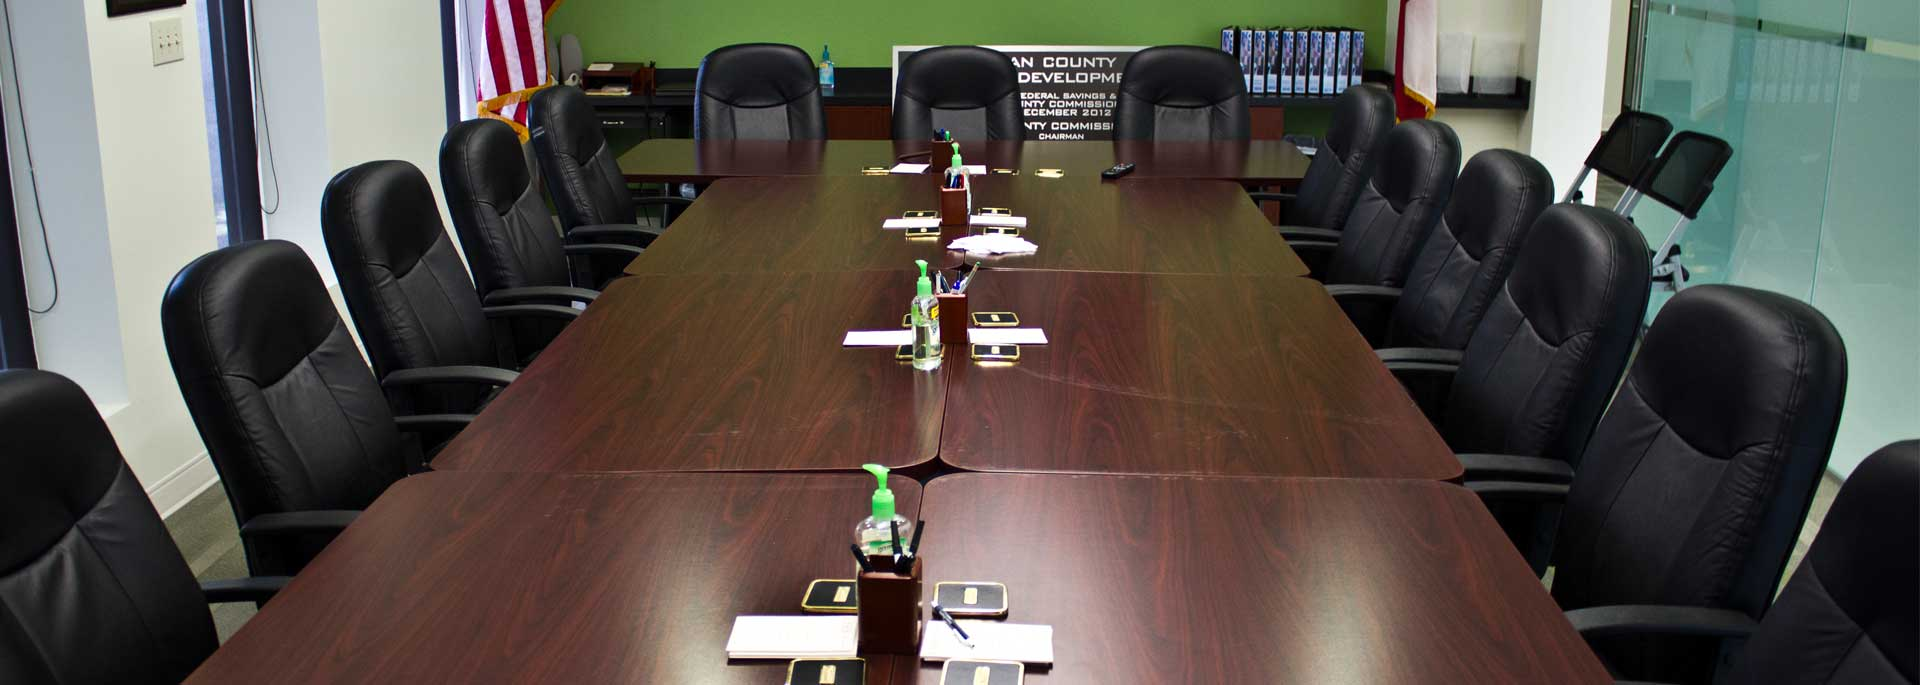 Economic Development Office Board Room